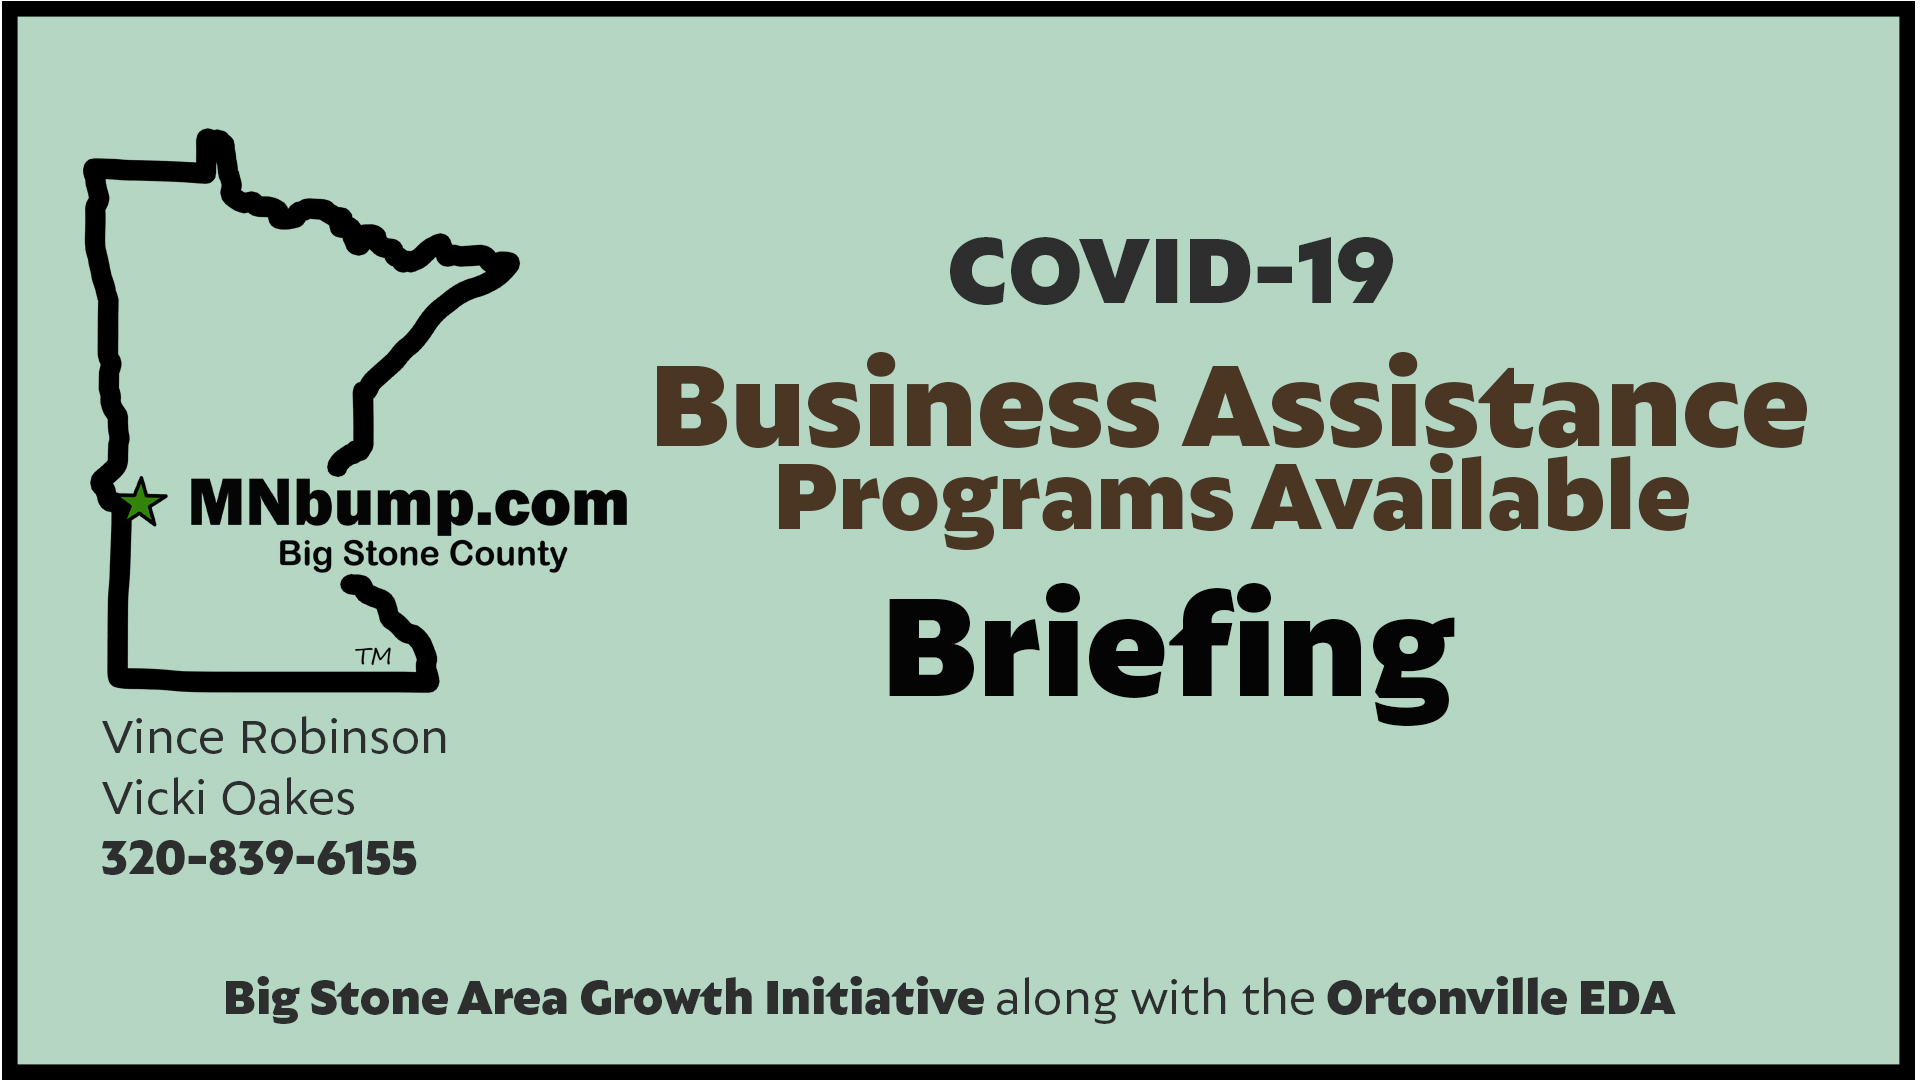 3/24/2020 COVID-19 Business Briefing